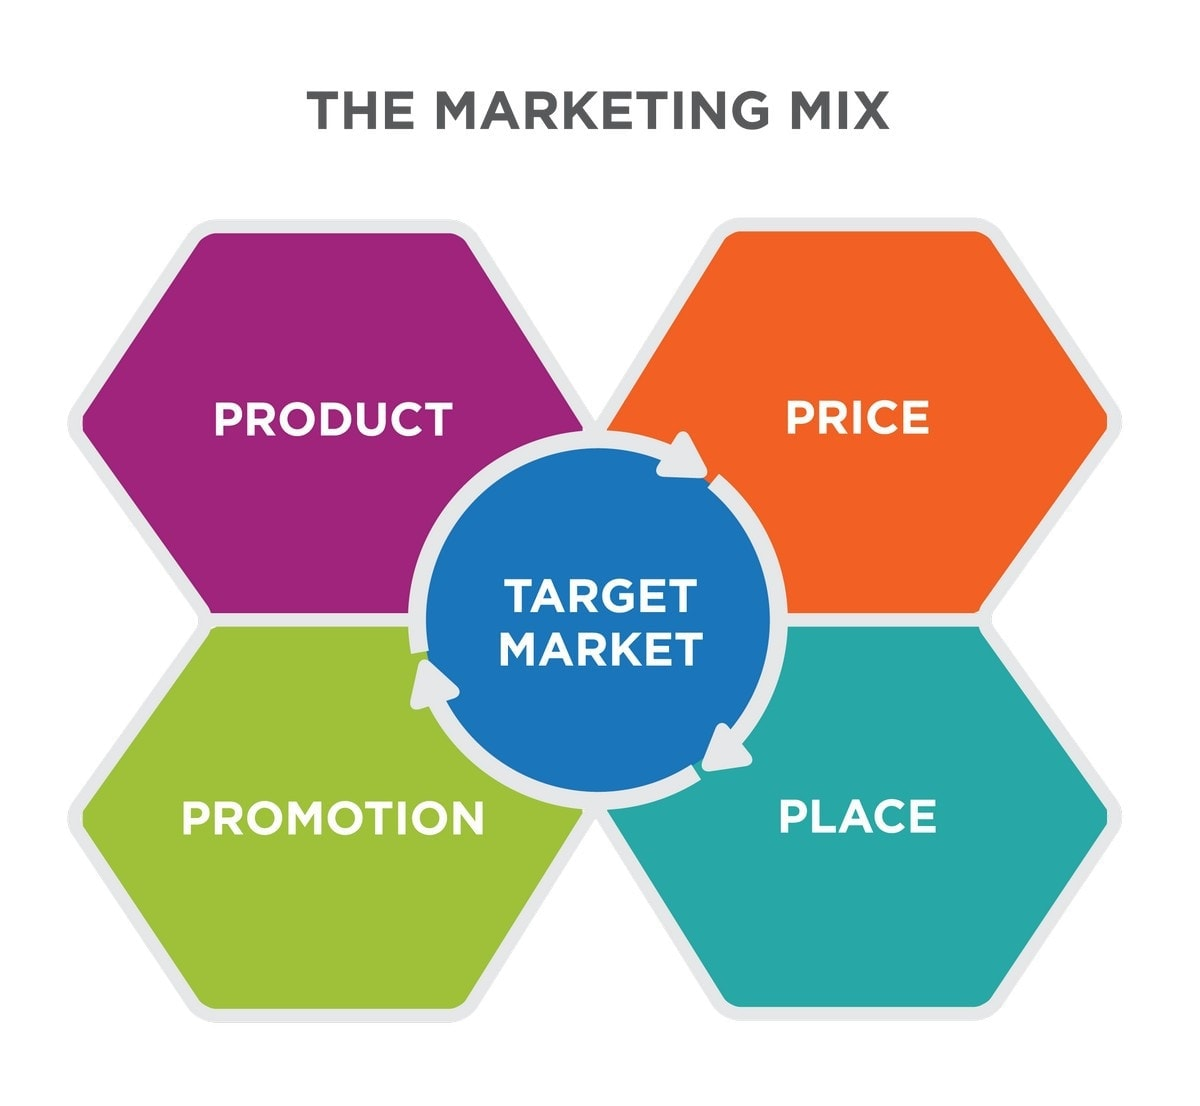 9 lessons we learn from Marketing mix